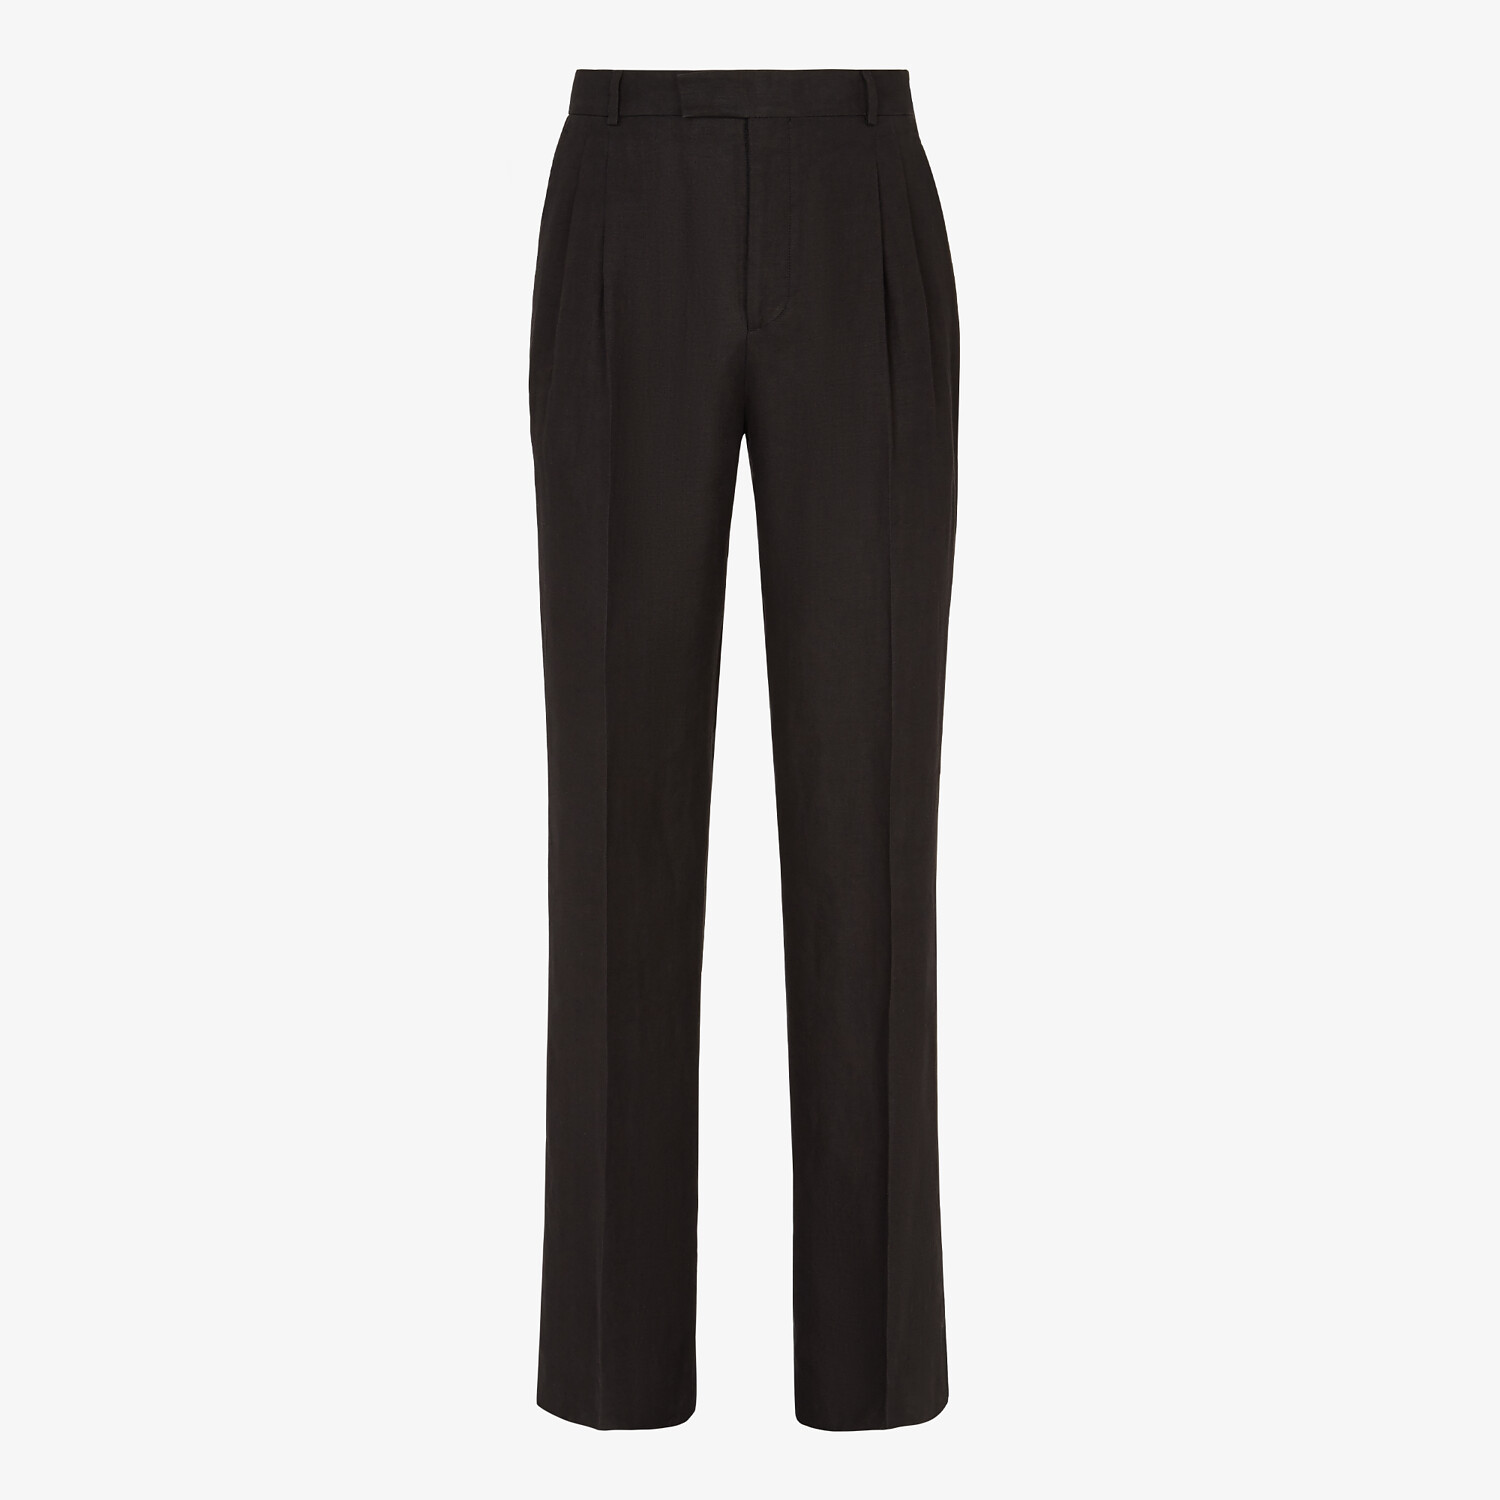 FENDI PANTS - Black hemp fabric pants - view 1 detail